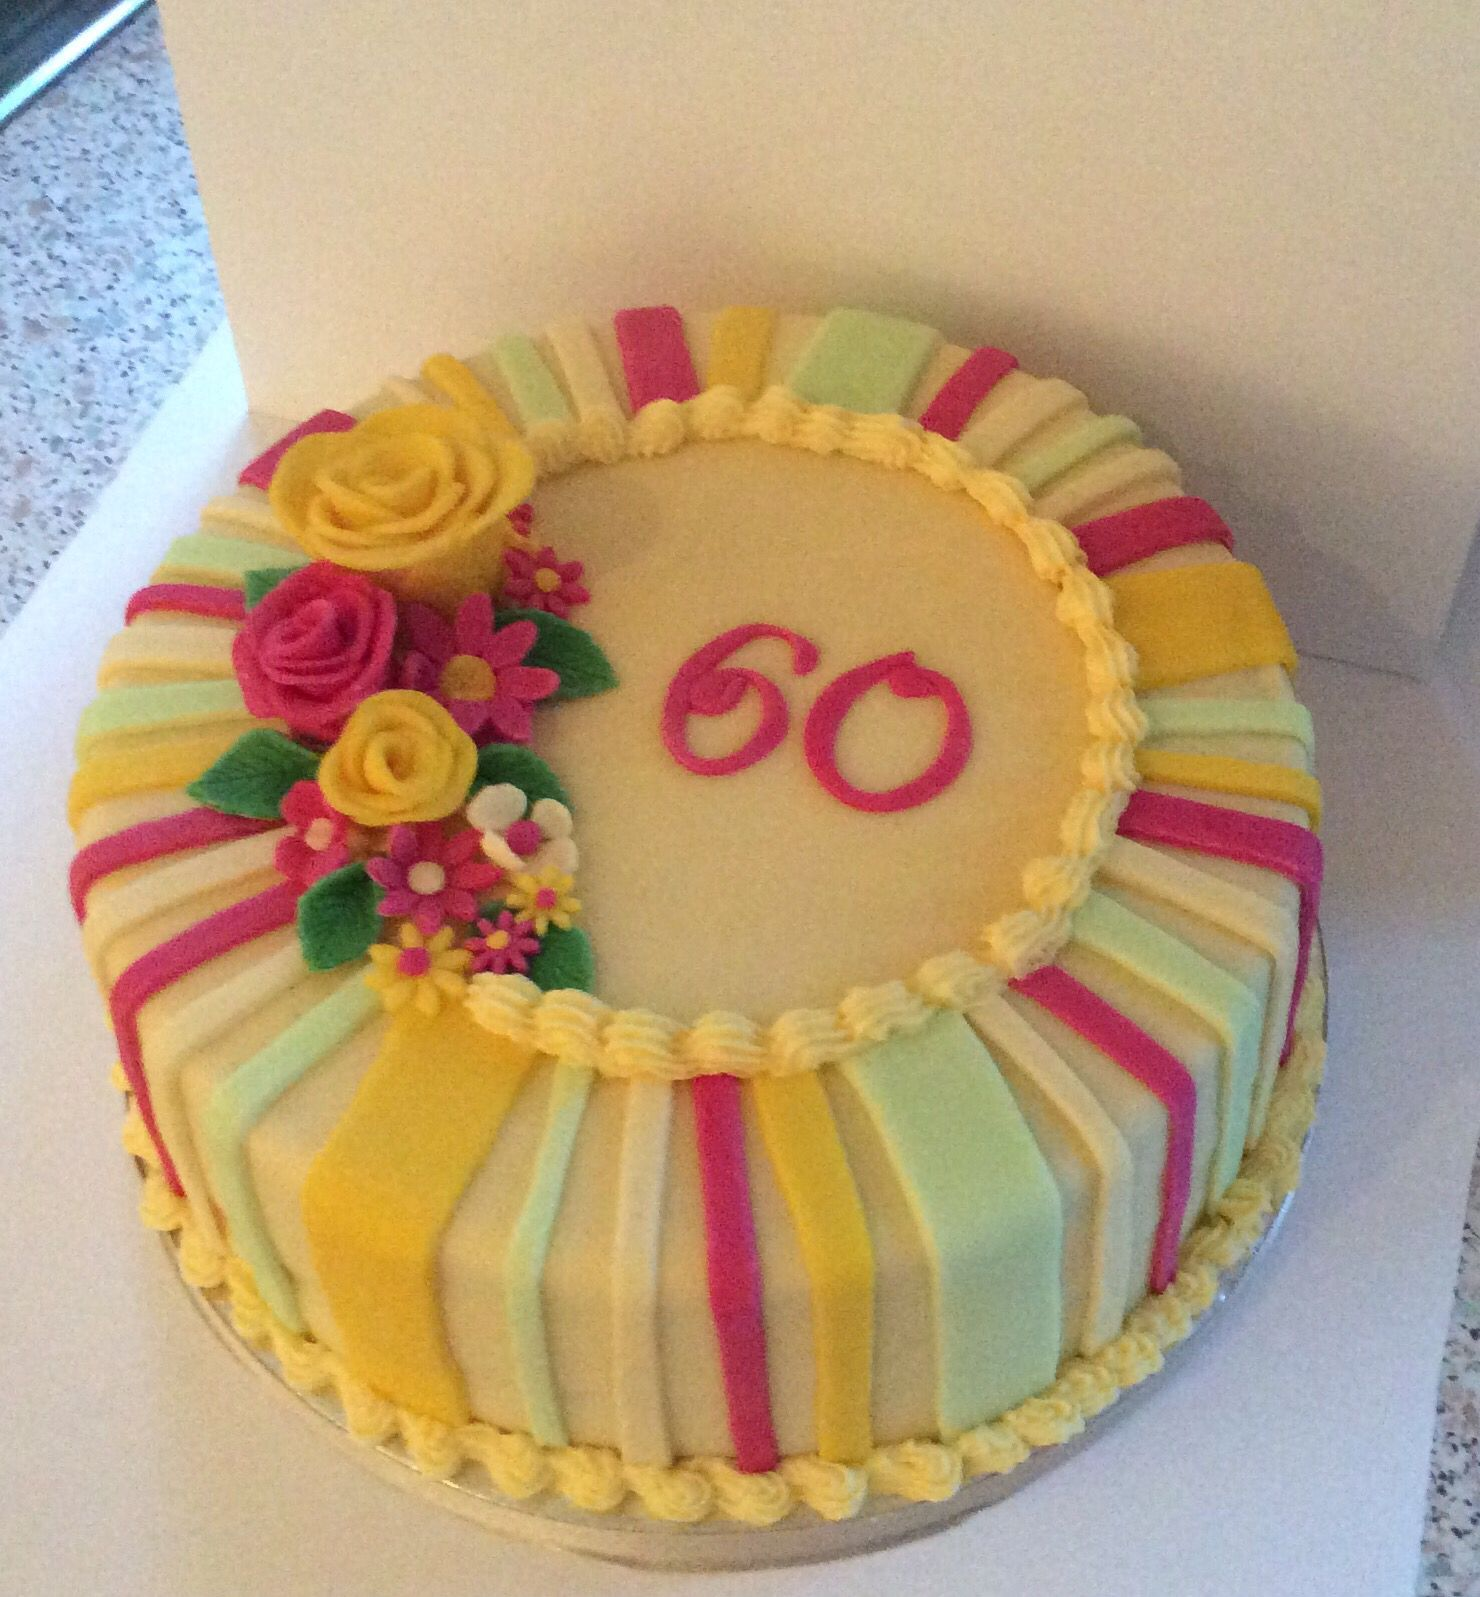 Bright Floral Cake For A Lovely Lady's 60th Birthday